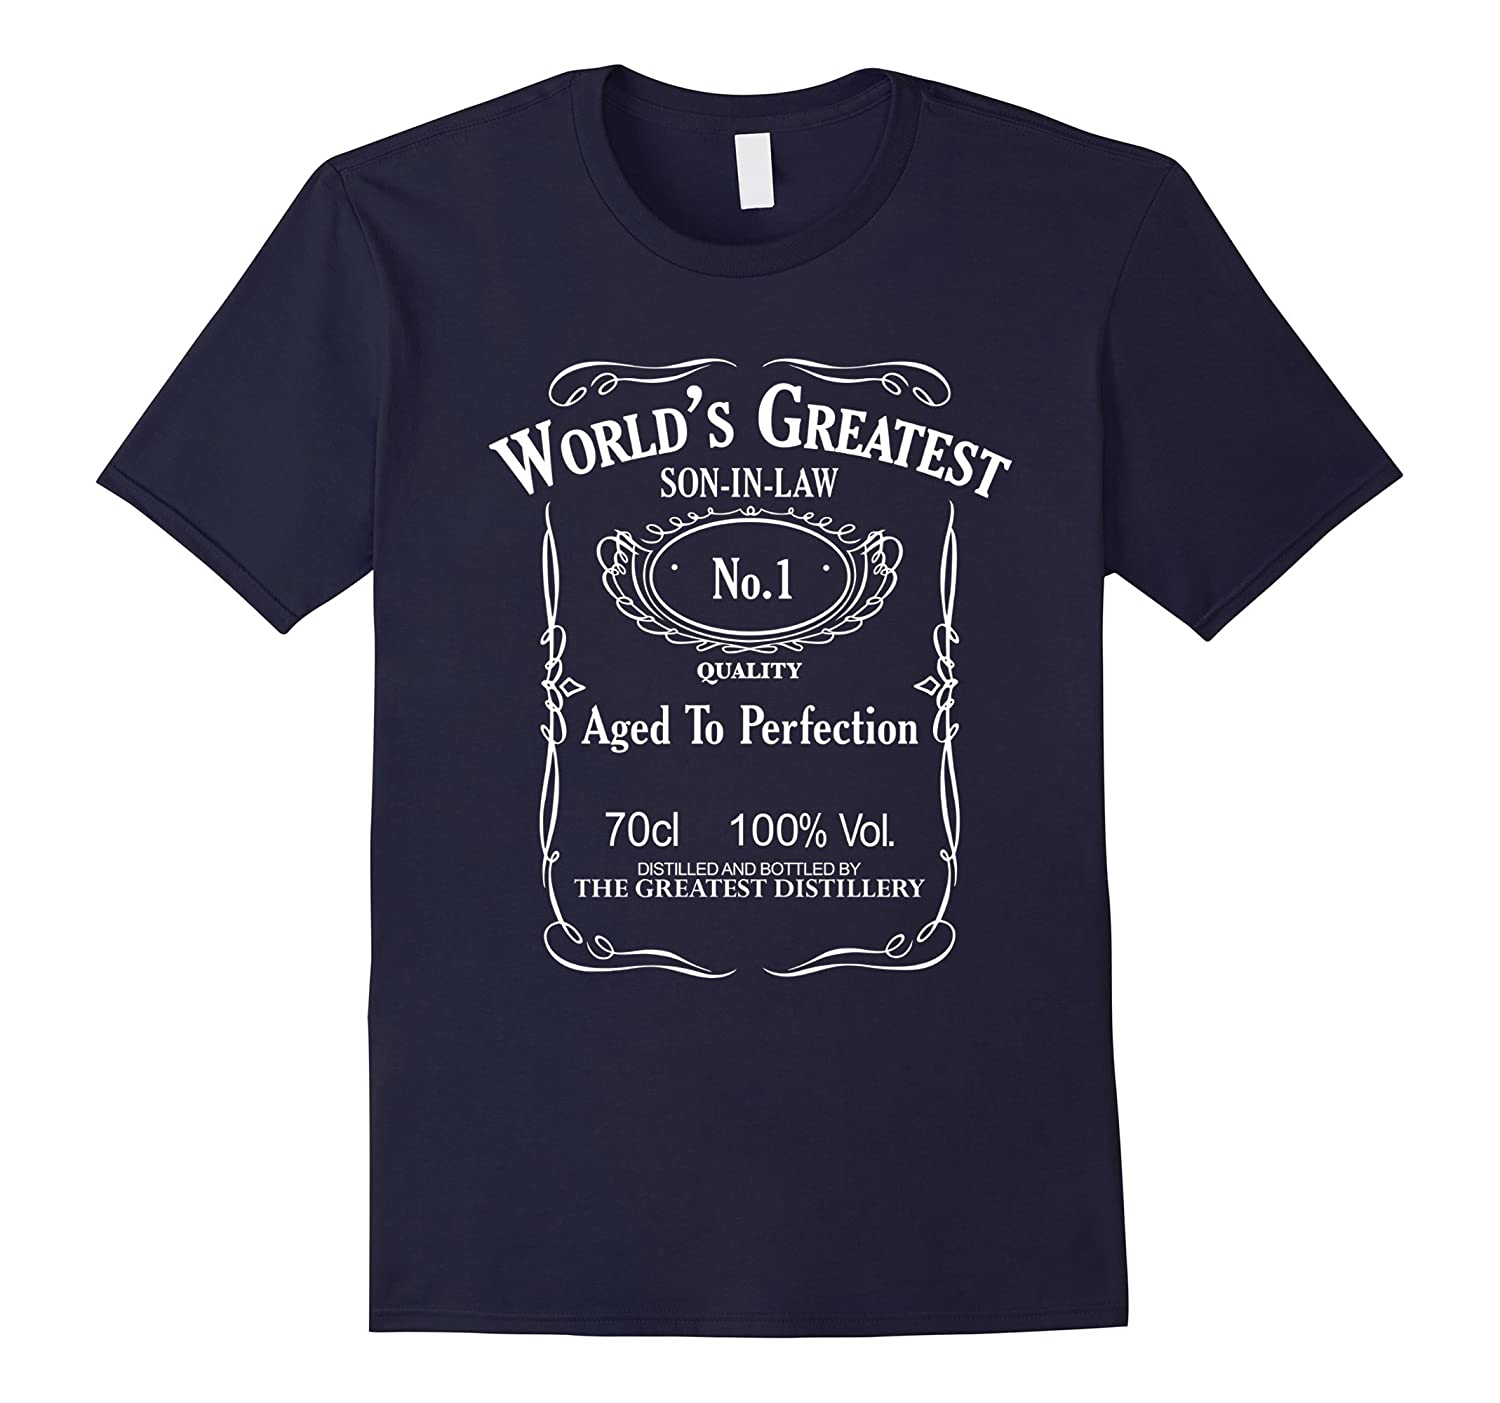 Worlds Greatest Son In-Law T-Shirt